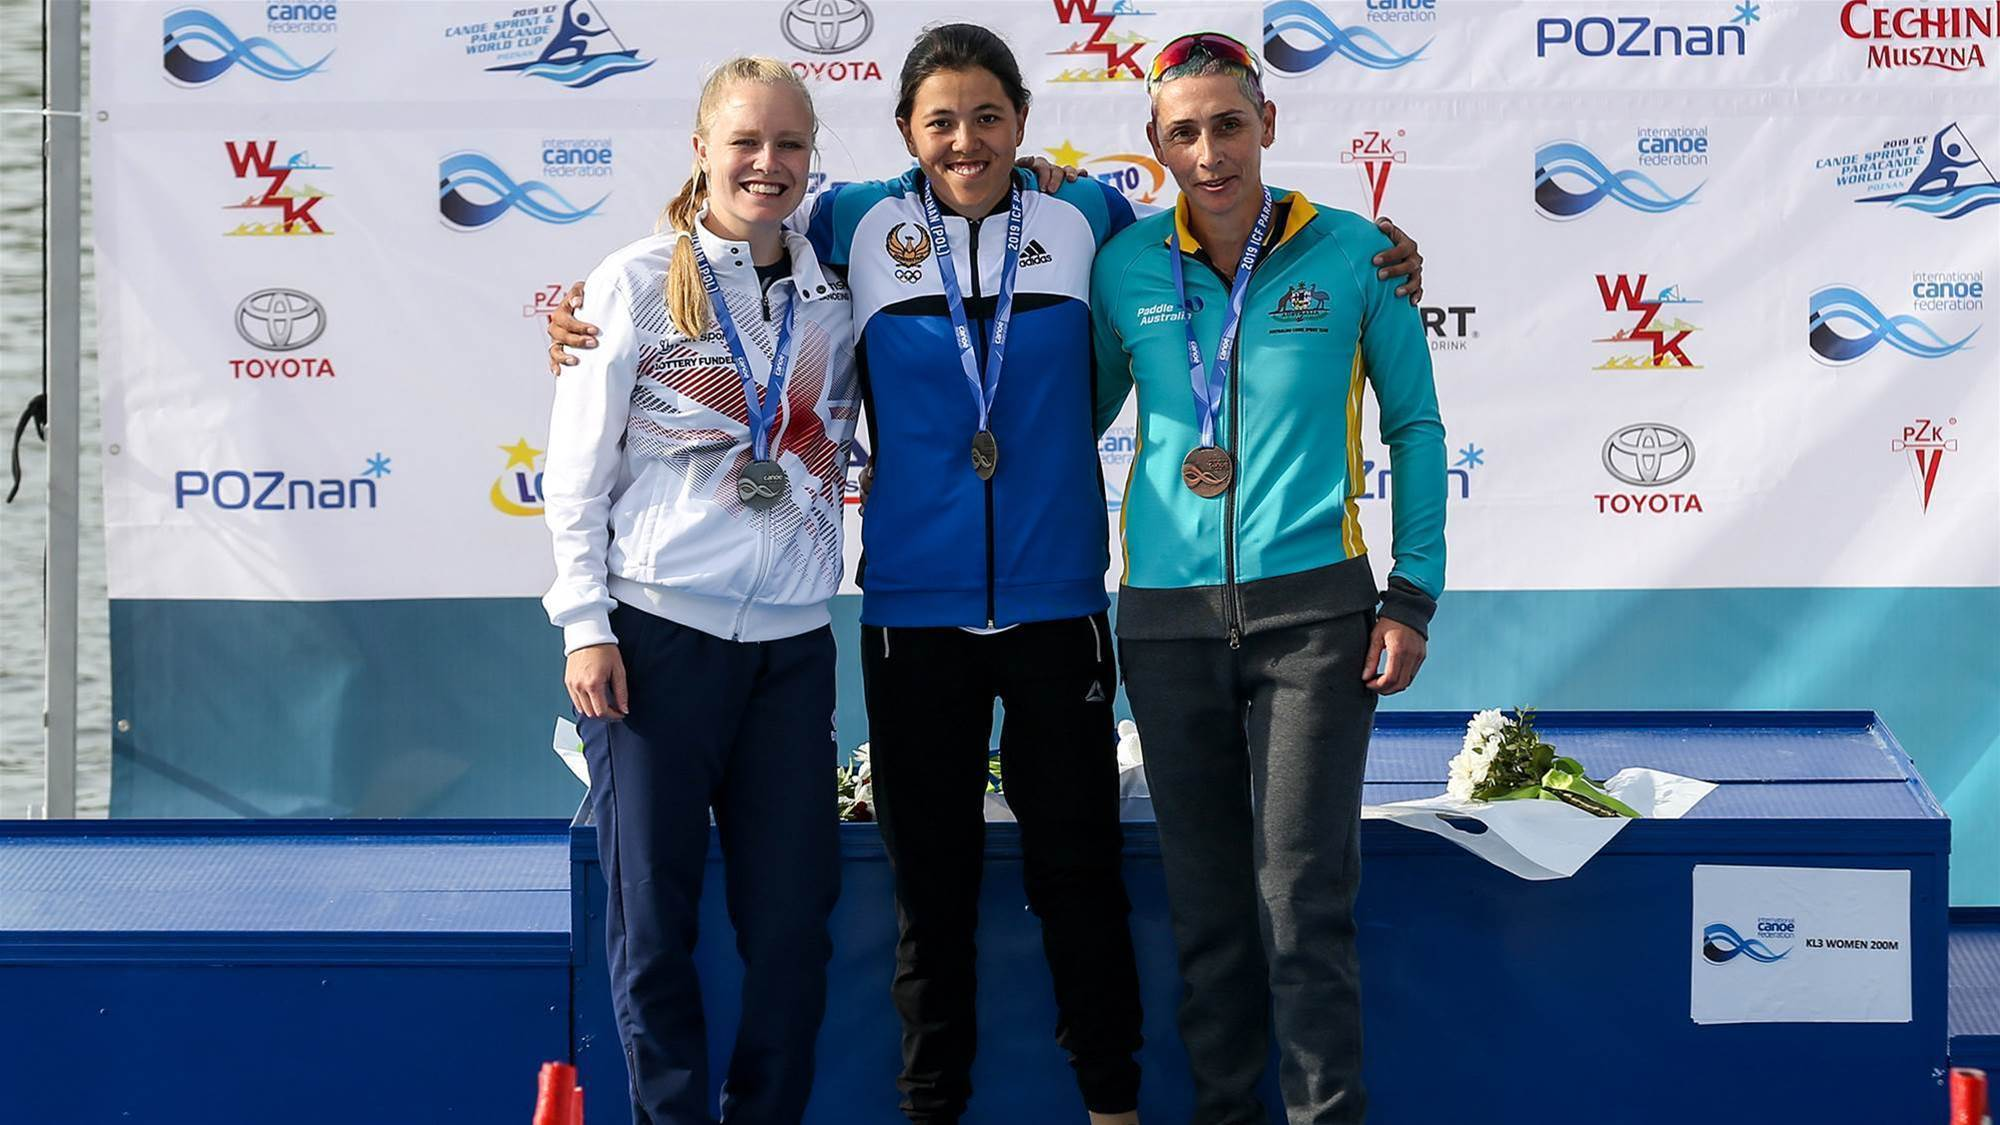 Reynolds and Seipel medal in Poland